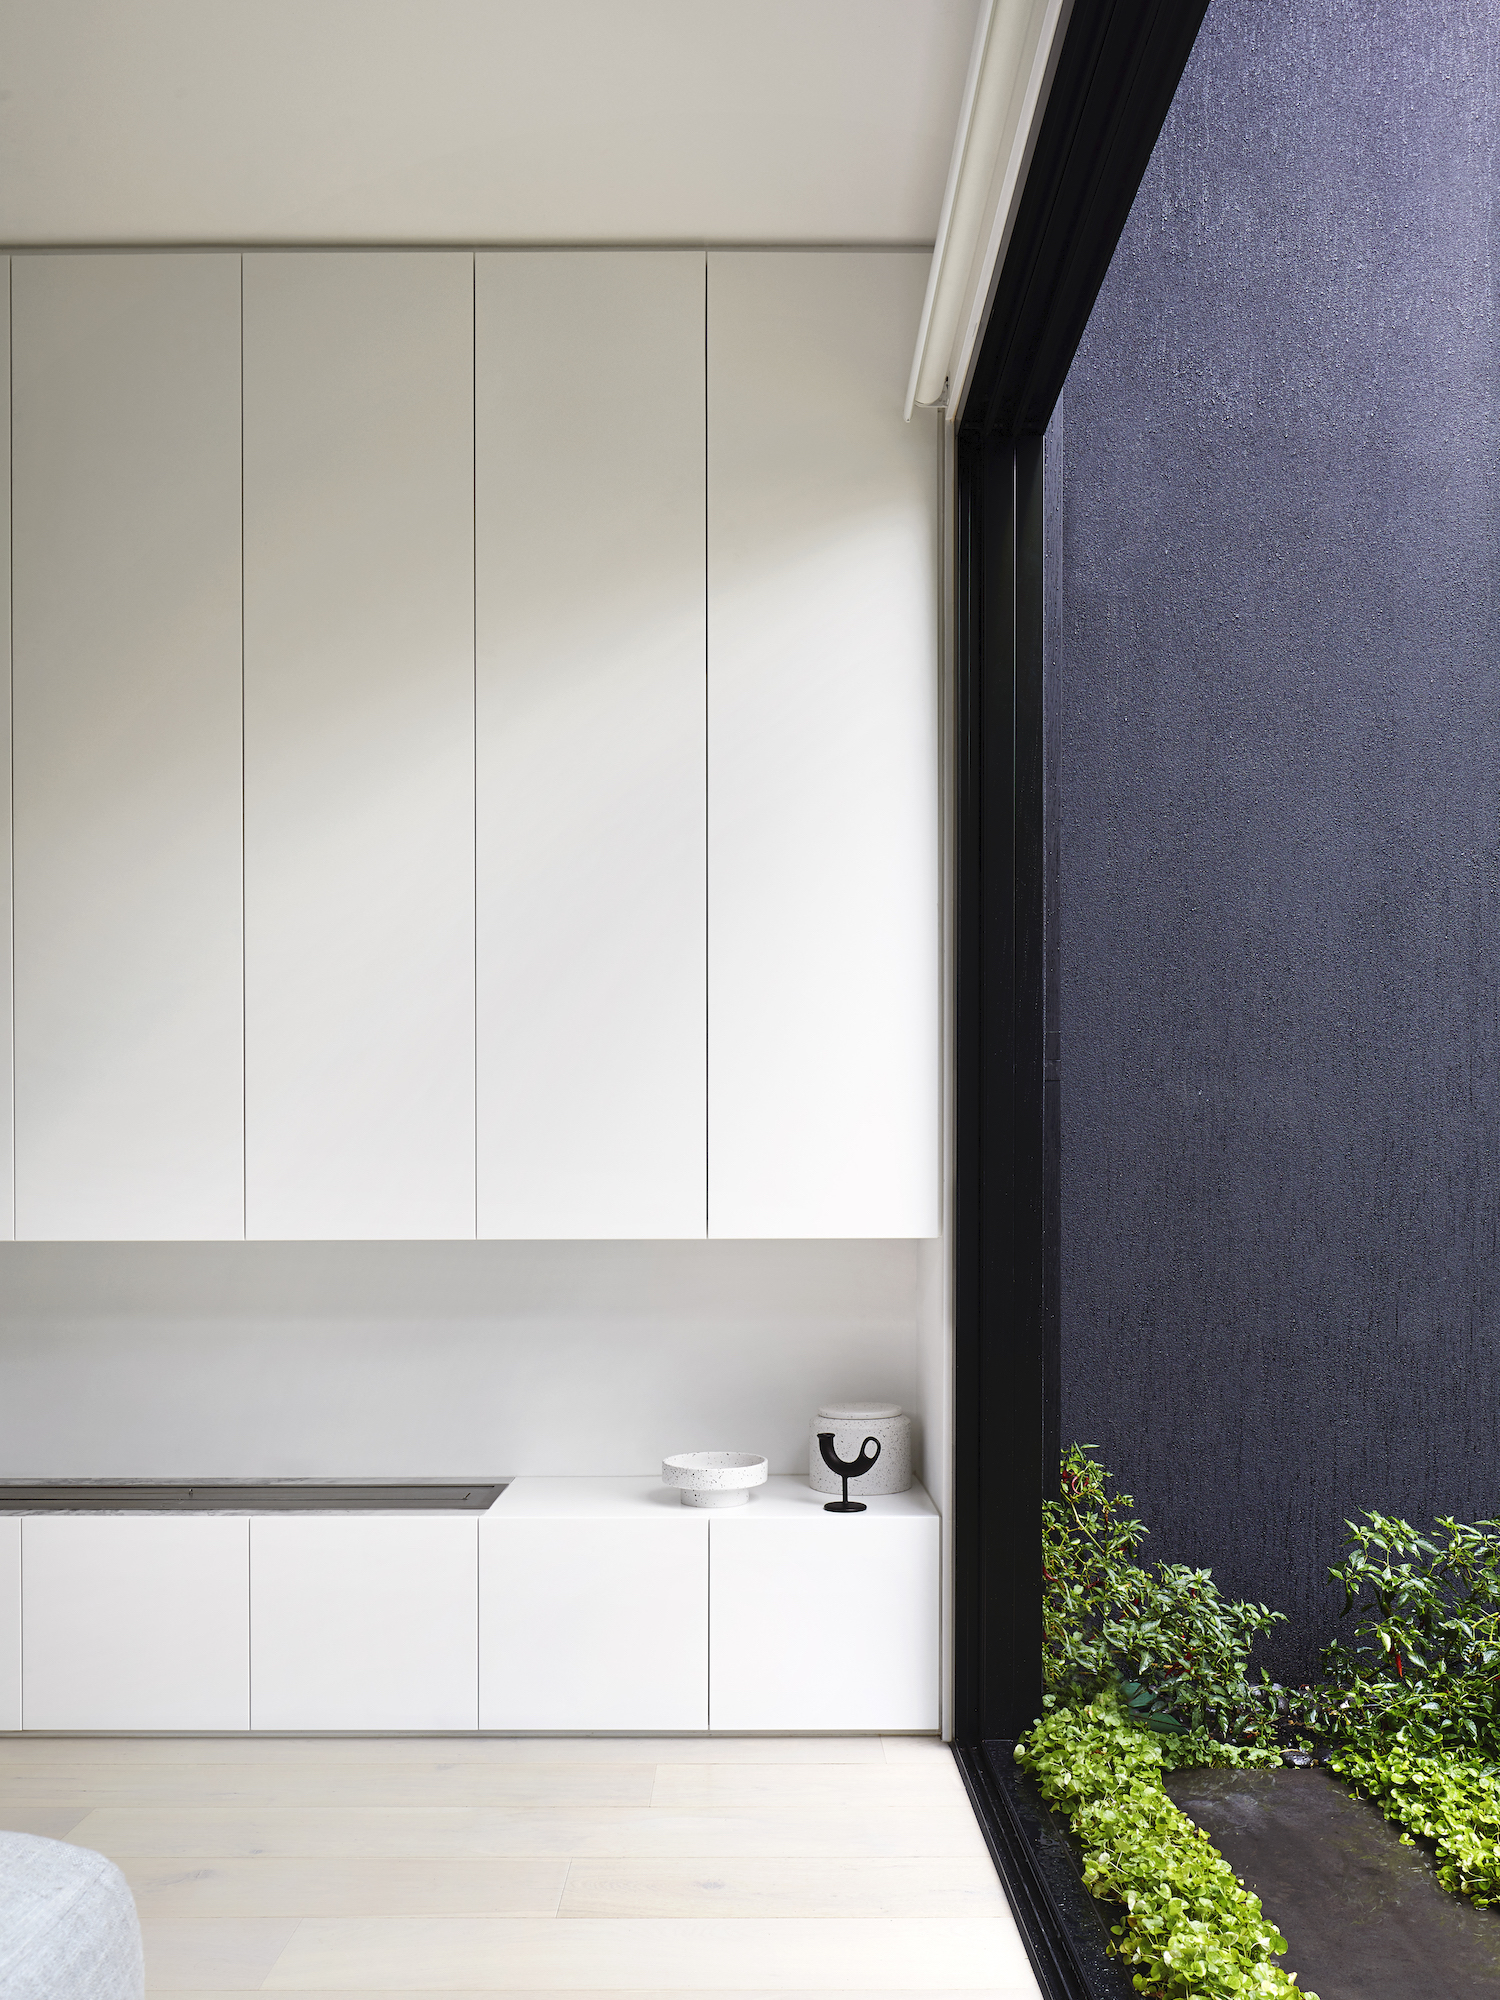 est living winter architecture south yarra townhouse 9